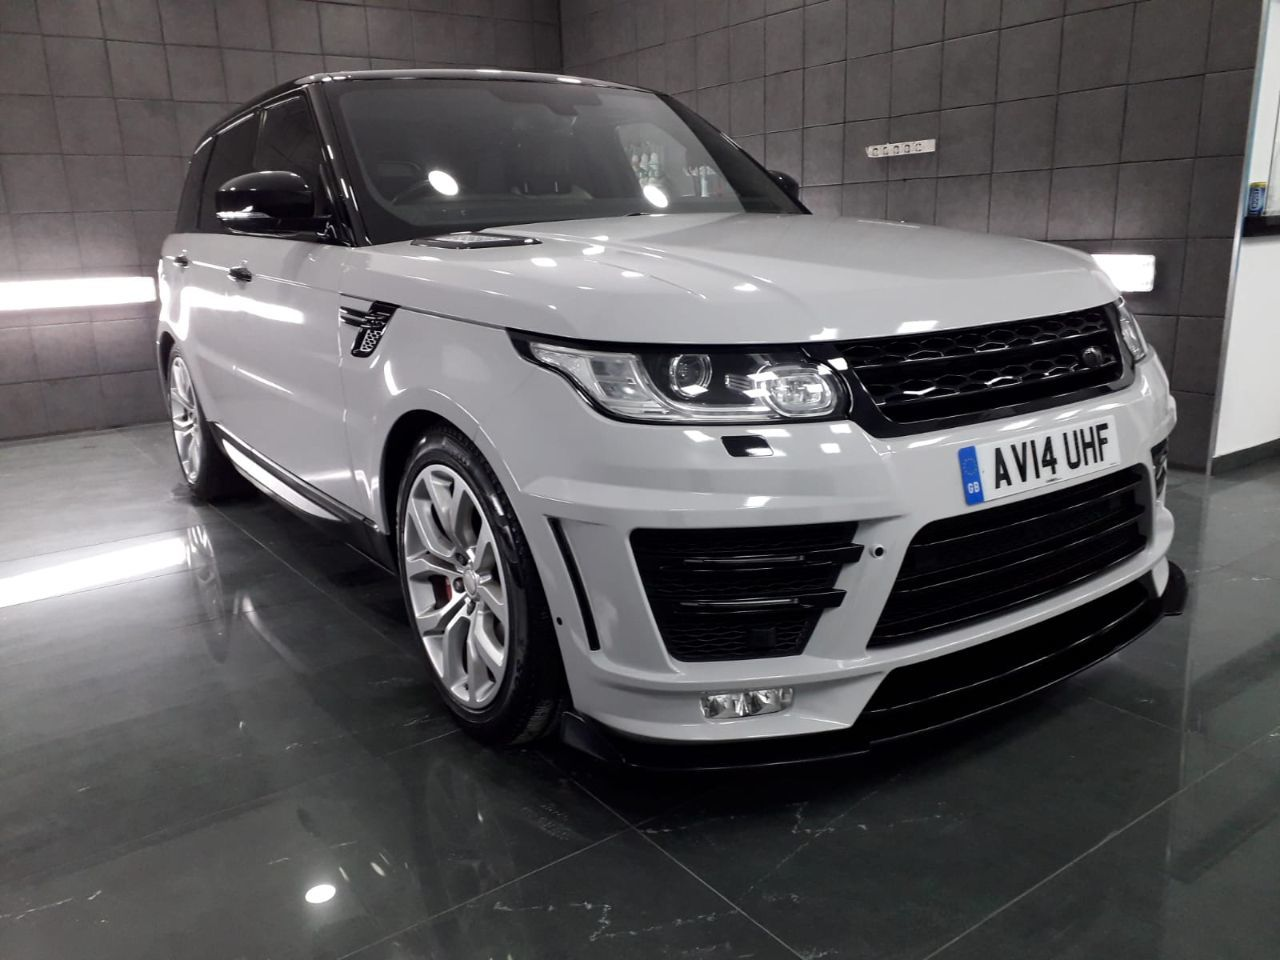 2014 Land Rover Range Rover Sport 3.0 SDV6 Autobiography Dynamic 5dr Auto